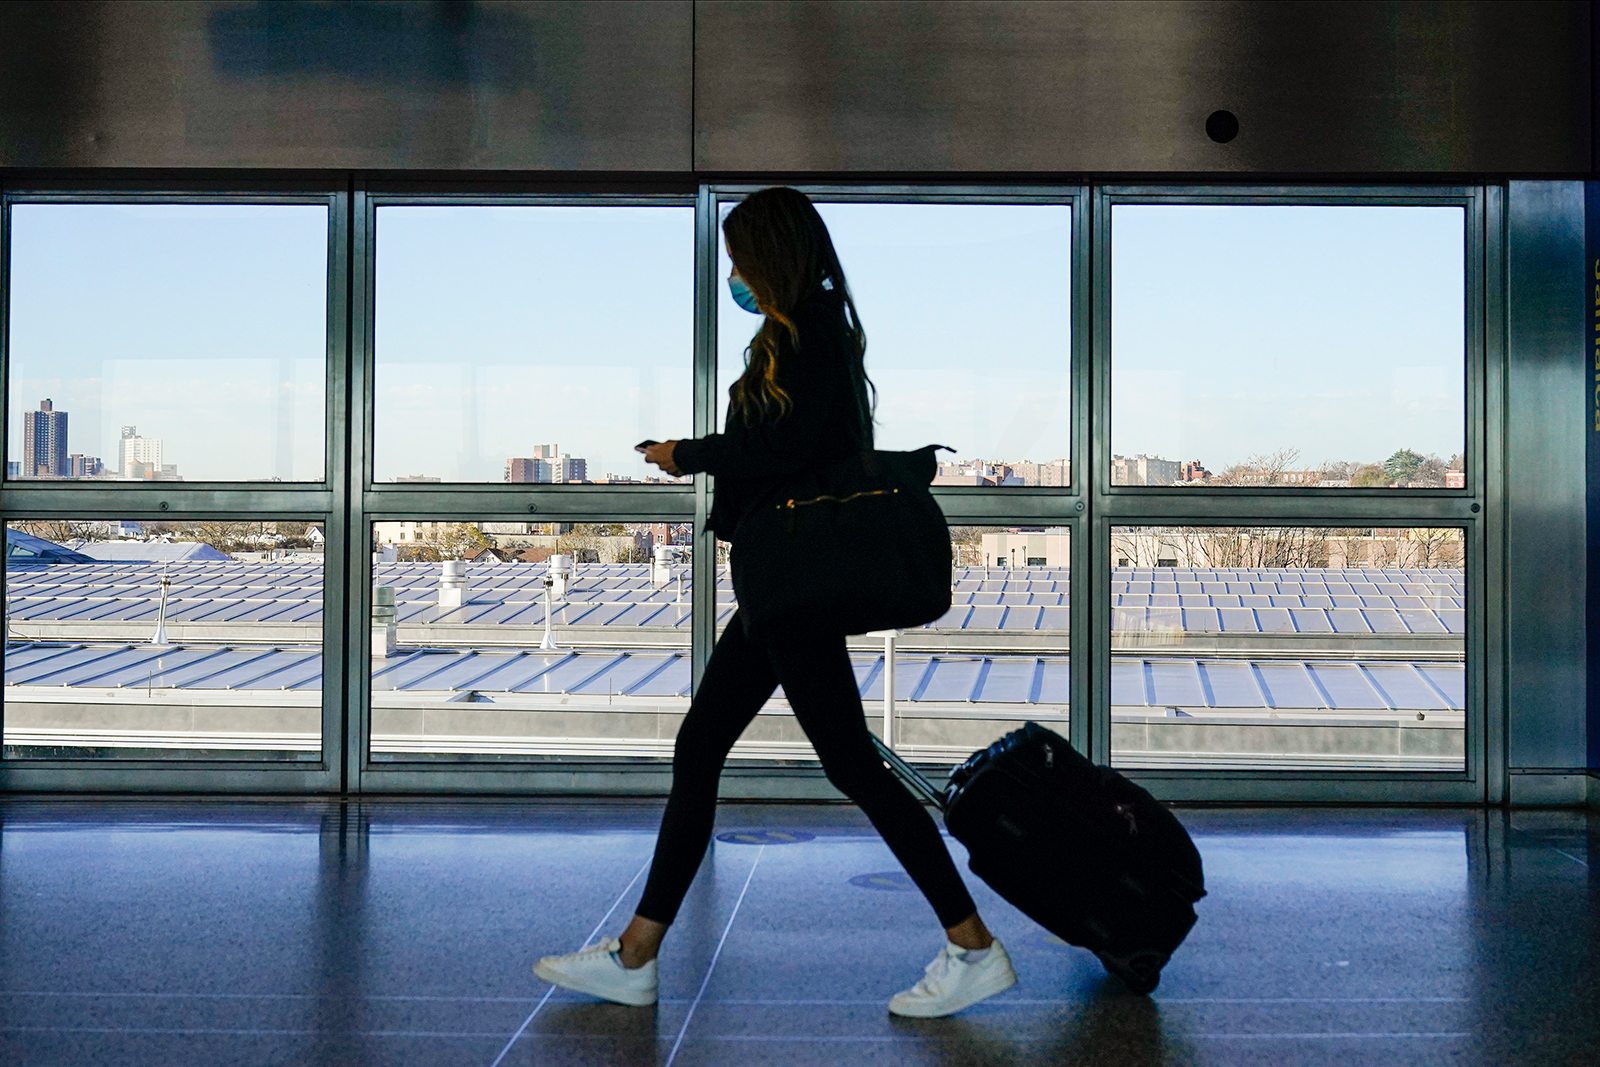 A traveler approaches the AirTrain to JKF International Airport in New York, on November 20.